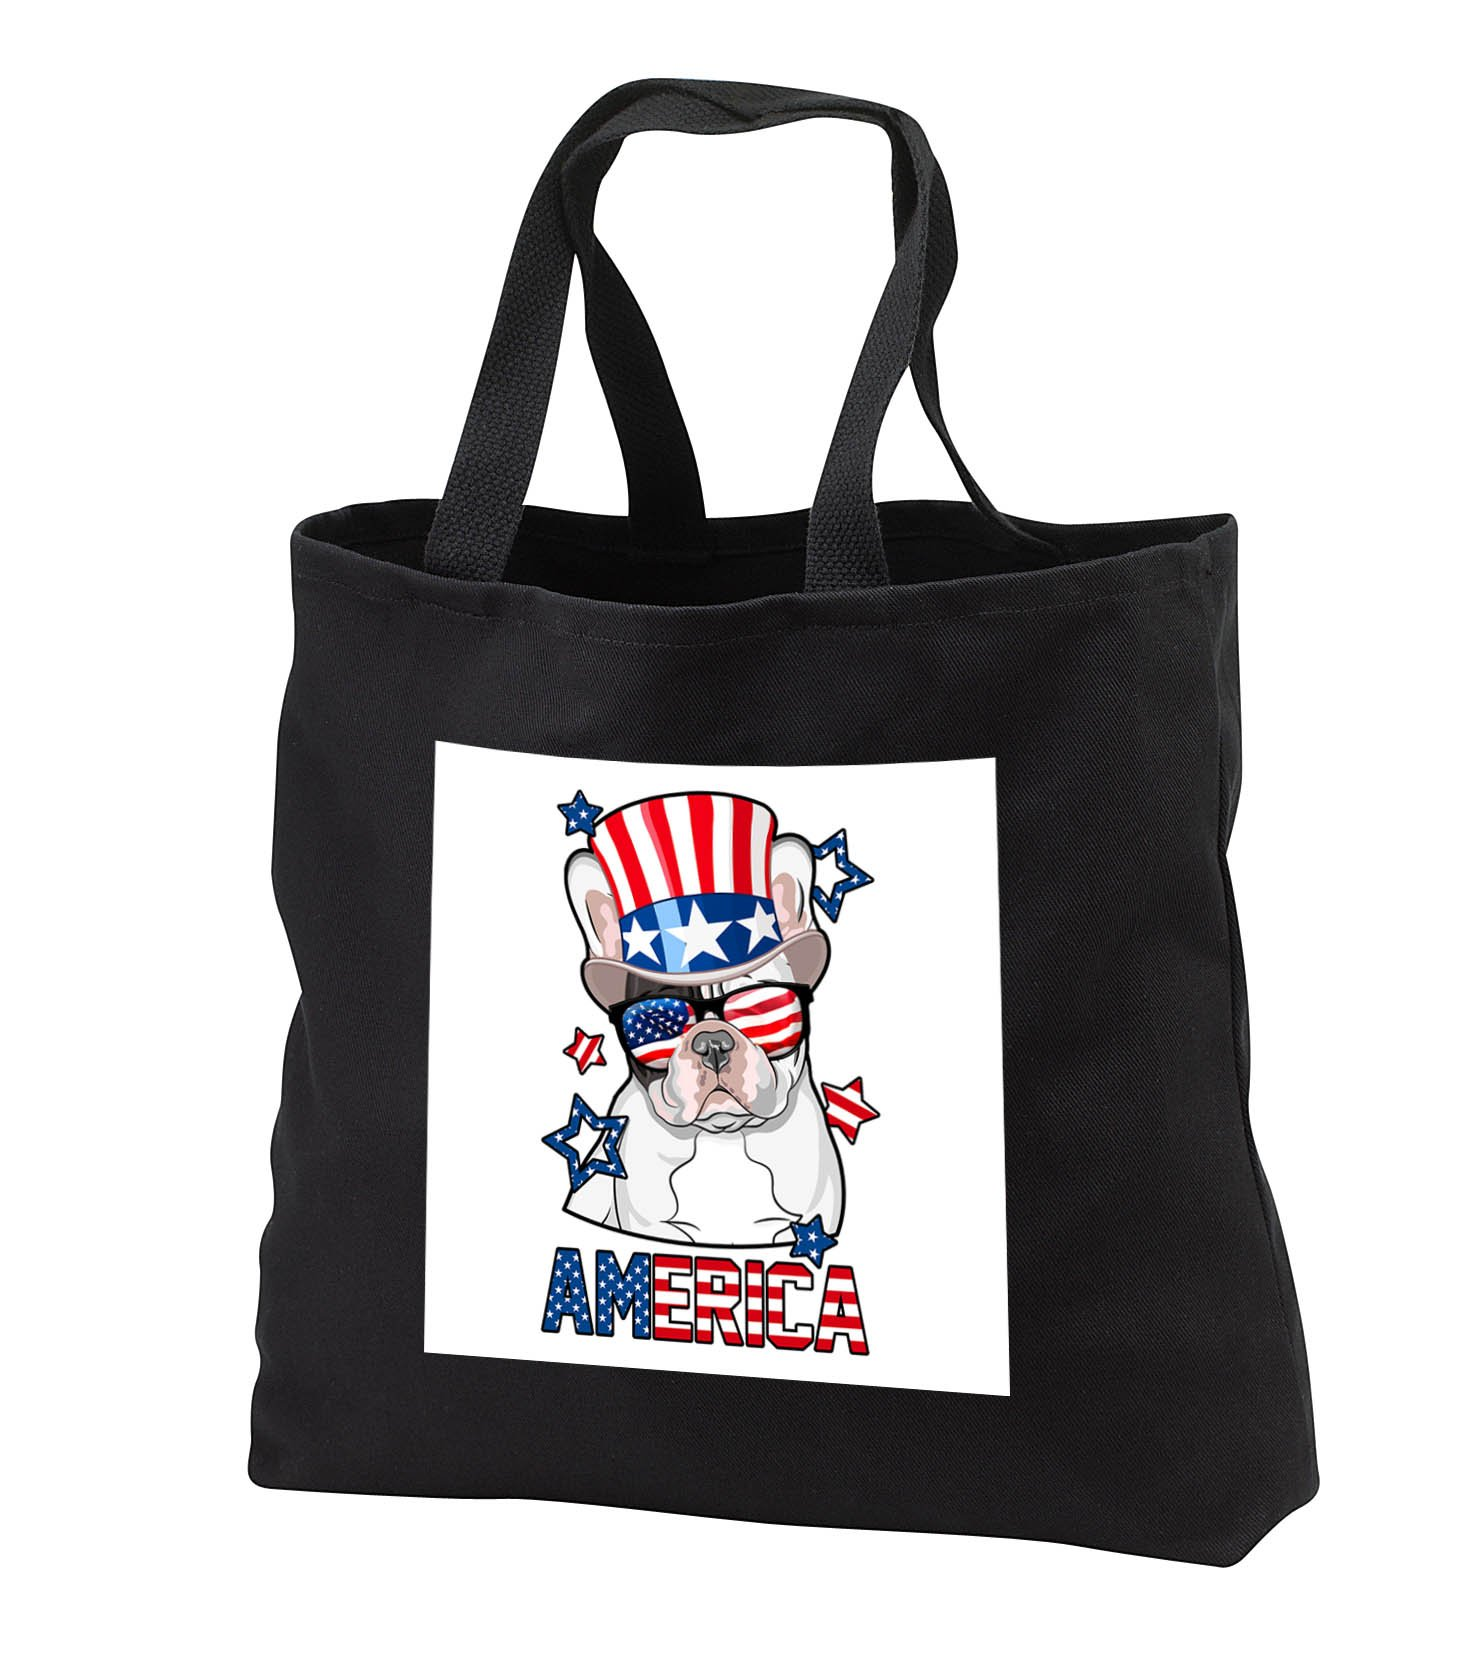 Patriotic American Dogs - French Bulldog With American Flag Sunglasses and Tophat Dog America - Tote Bags - Black Tote Bag 14w x 14h x 3d (tb_284220_1)